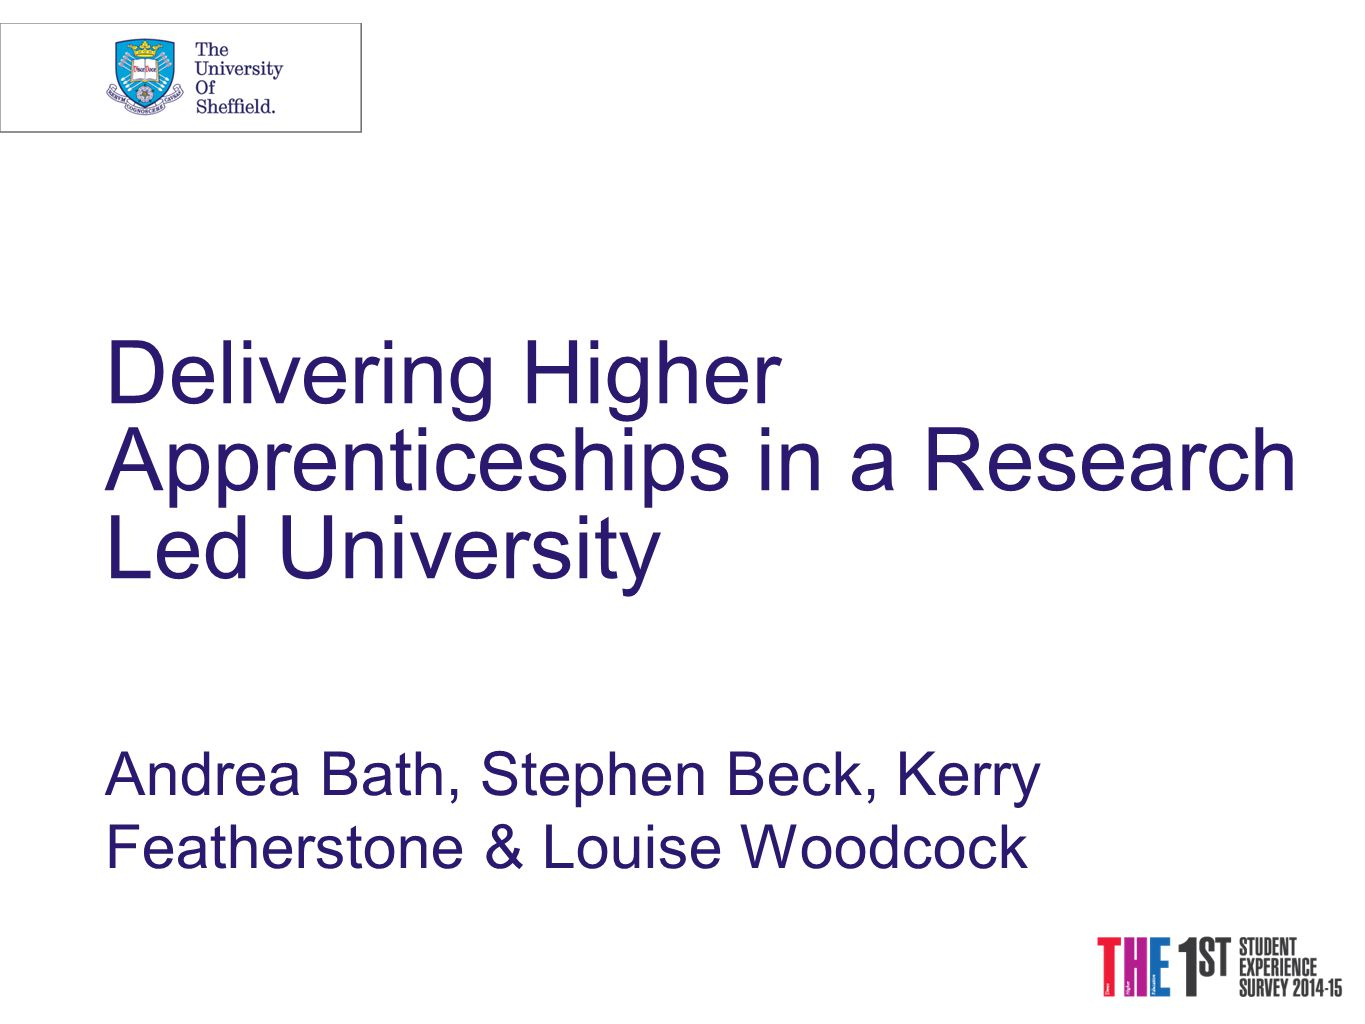 Delivering Higher Apprenticeships in a Research Led University Andrea Bath, Stephen Beck, Kerry Featherstone & Louise Woodcock